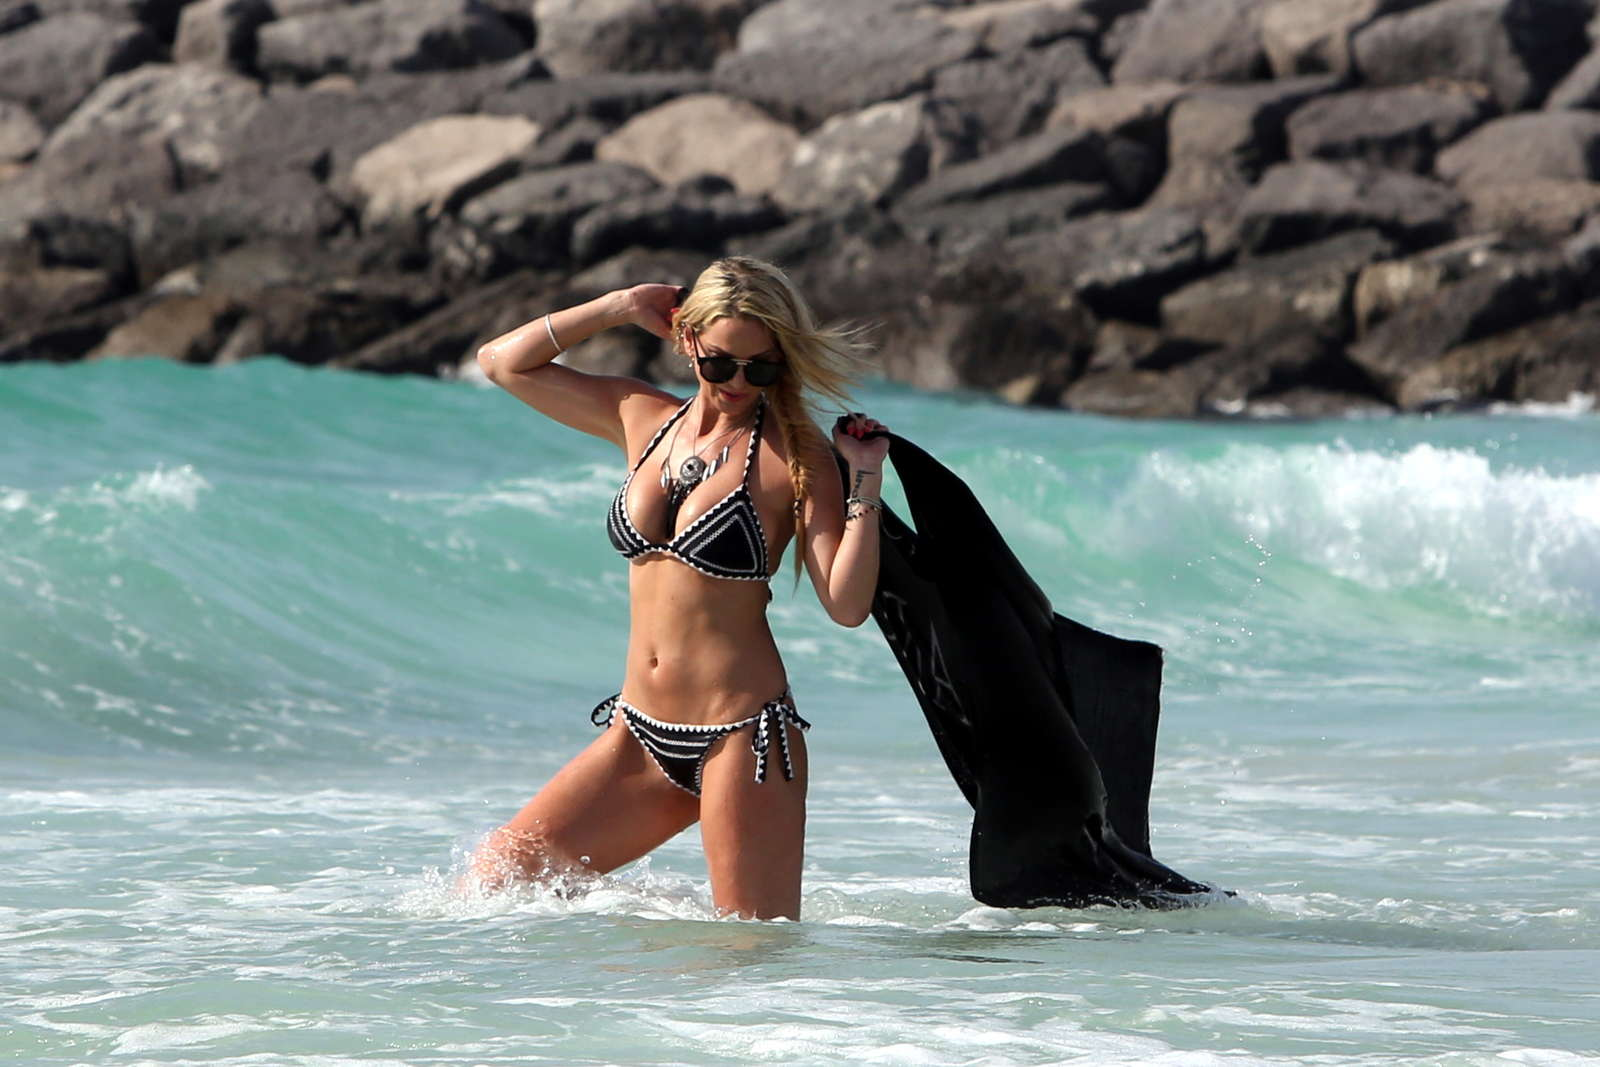 Sarah Harding in Black Bikini in Dubai Pic 10 of 35